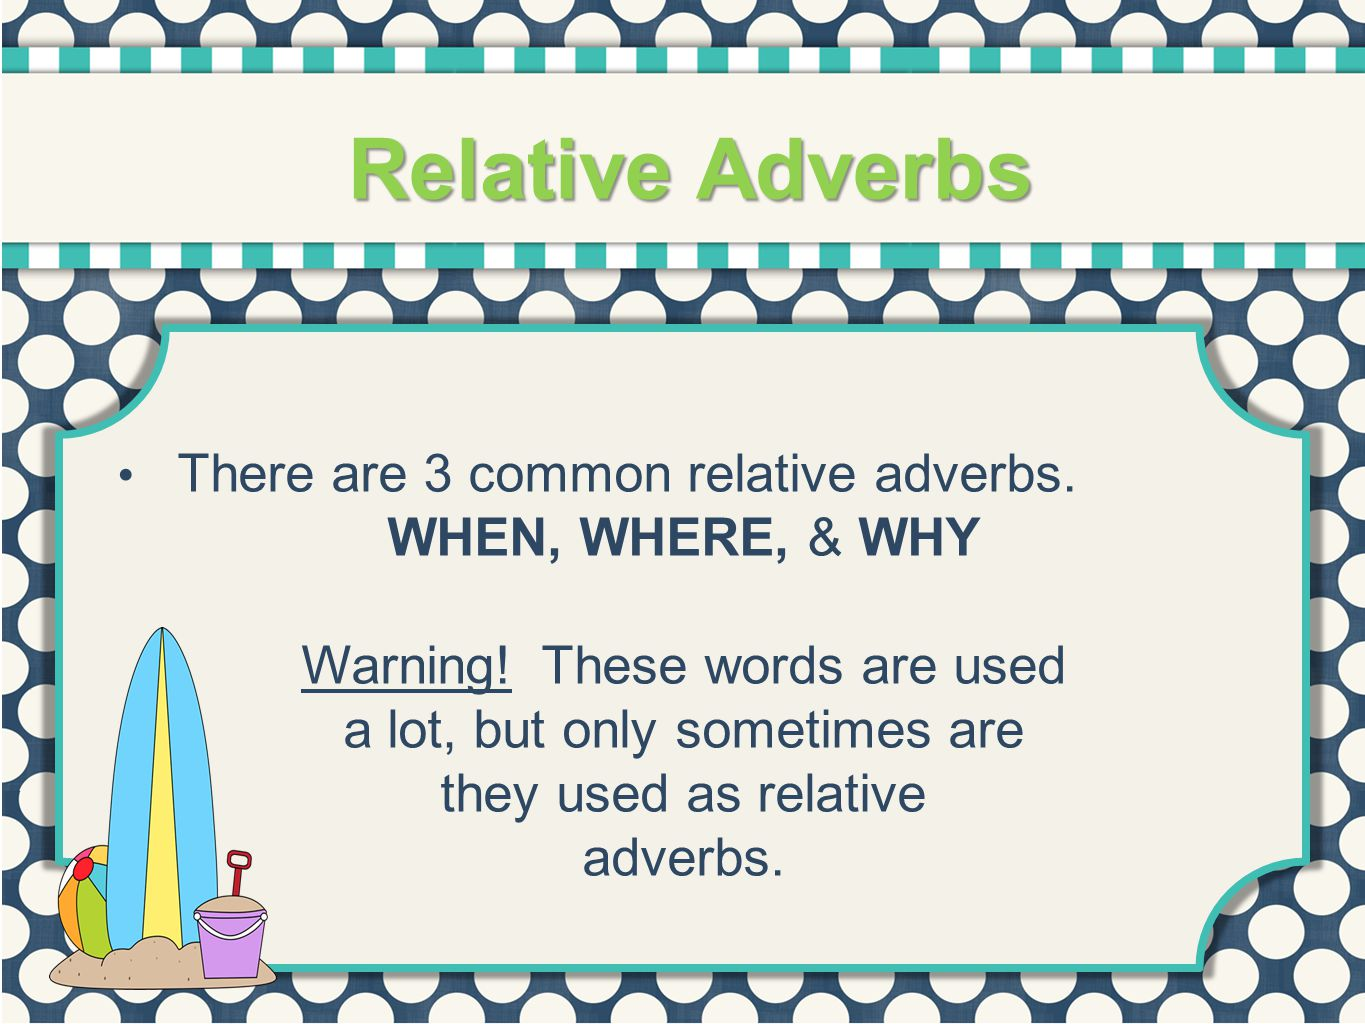 Relative Adverbs There are 3 common relative adverbs.